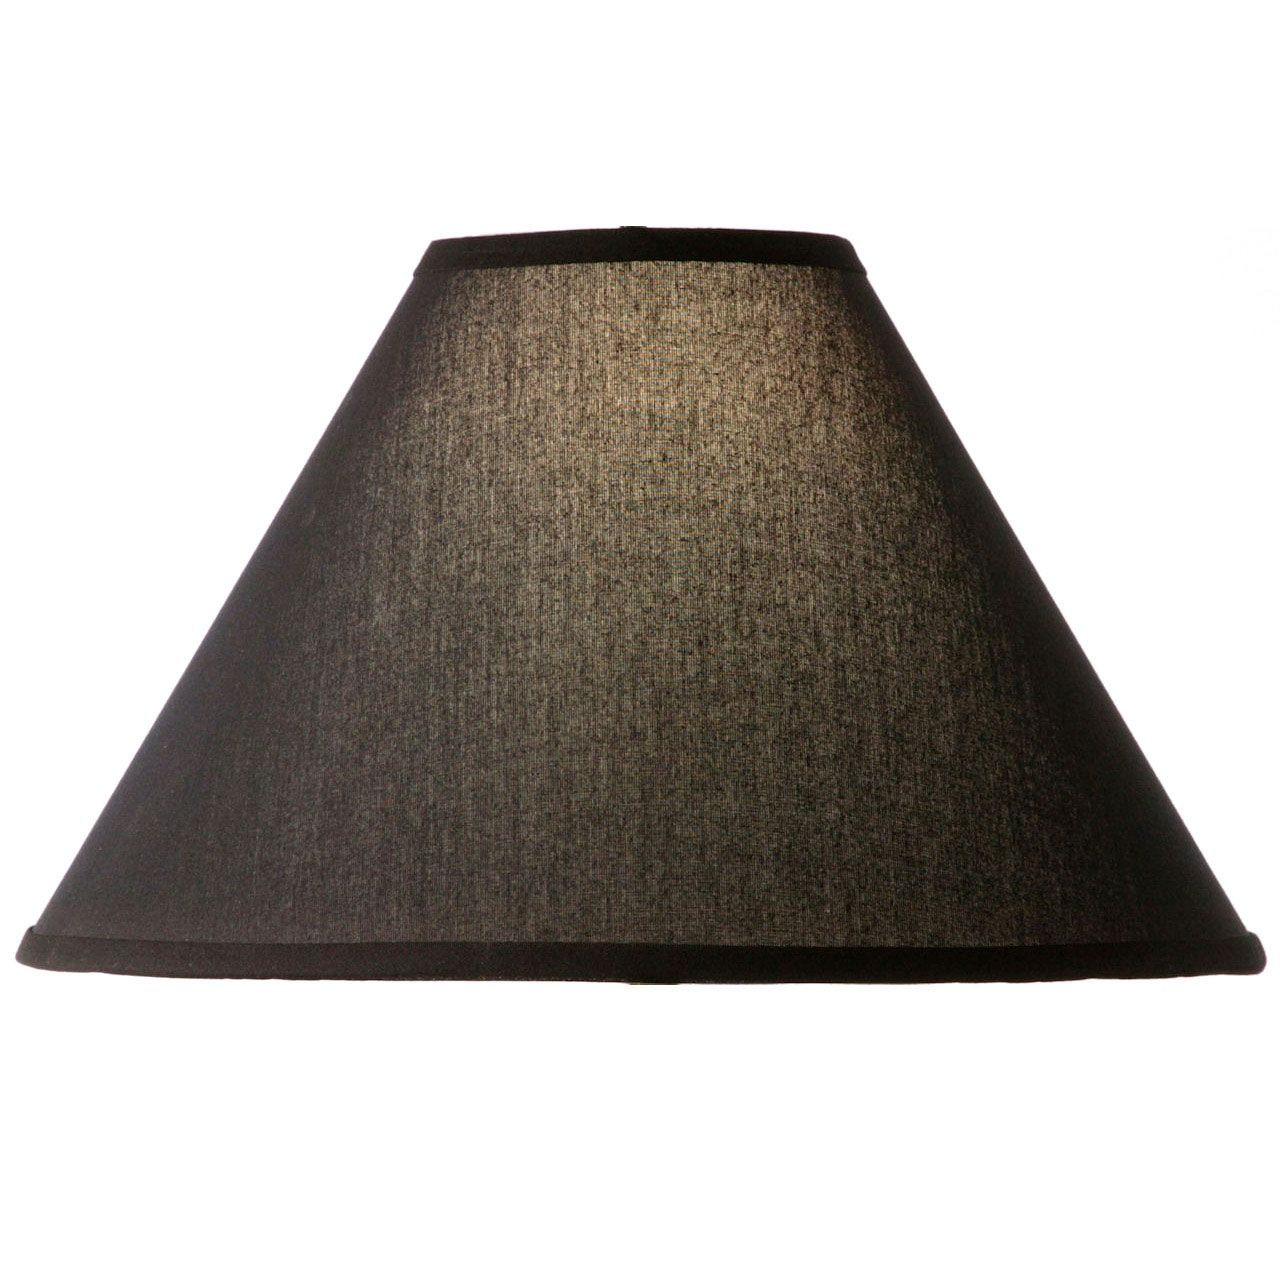 Free Funky Lamp Shades Ireland With Images Funky Lamp Shades Shabby Chic Lamp Shades Lamp Shades